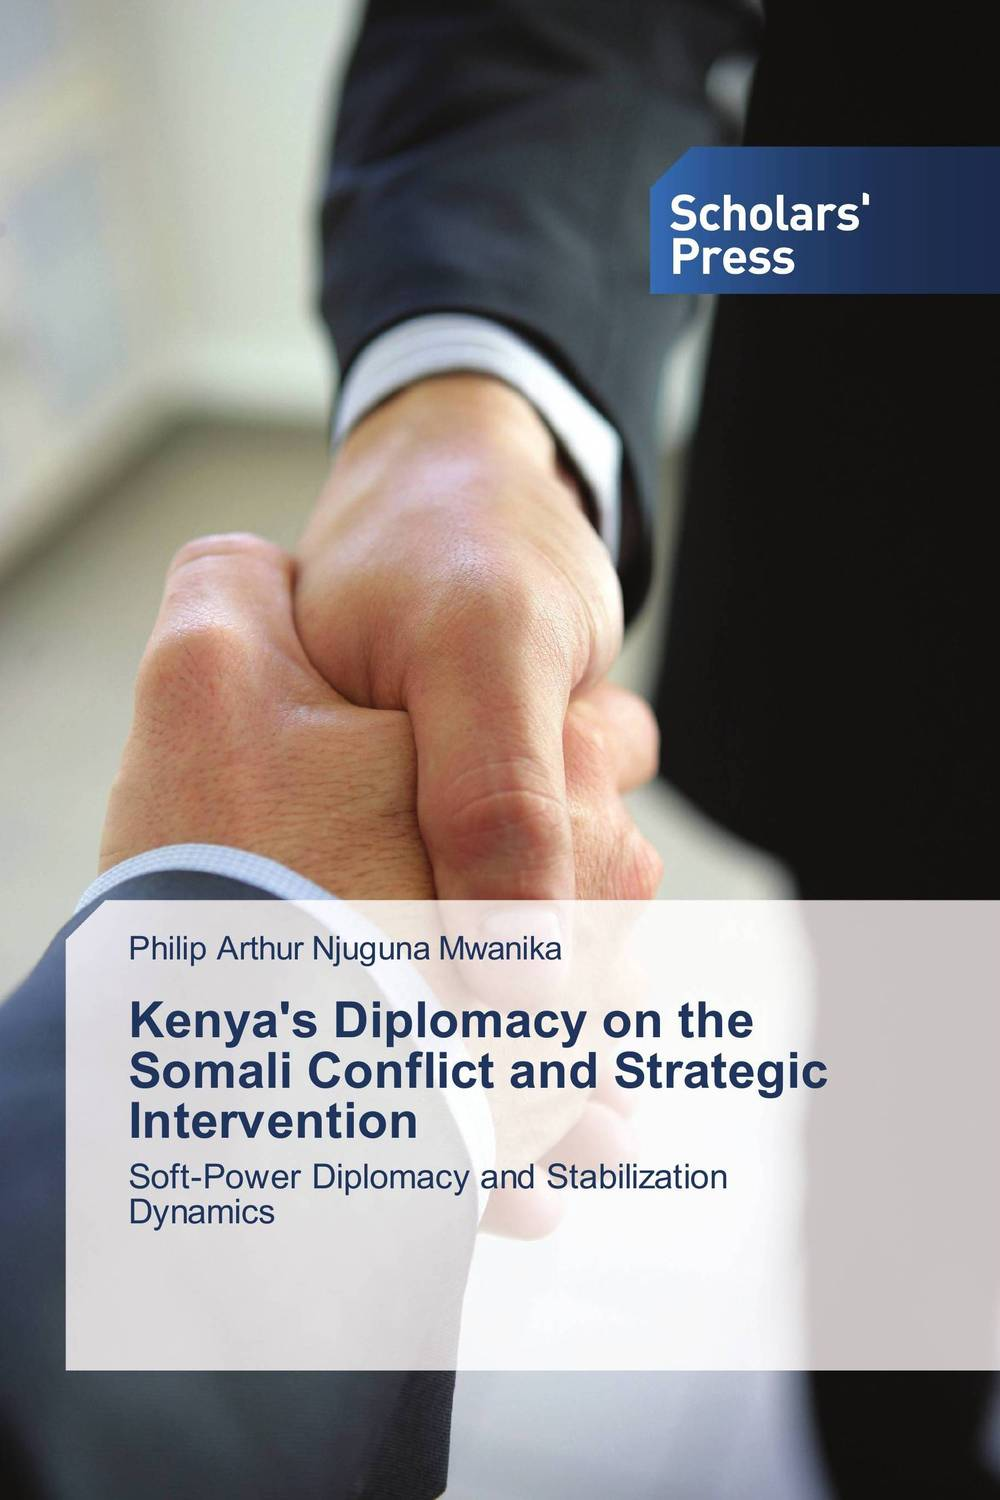 Kenya's Diplomacy on the Somali Conflict and Strategic Intervention nuhu saje adamu strategic role of interfaith diplomacy in conflicts management